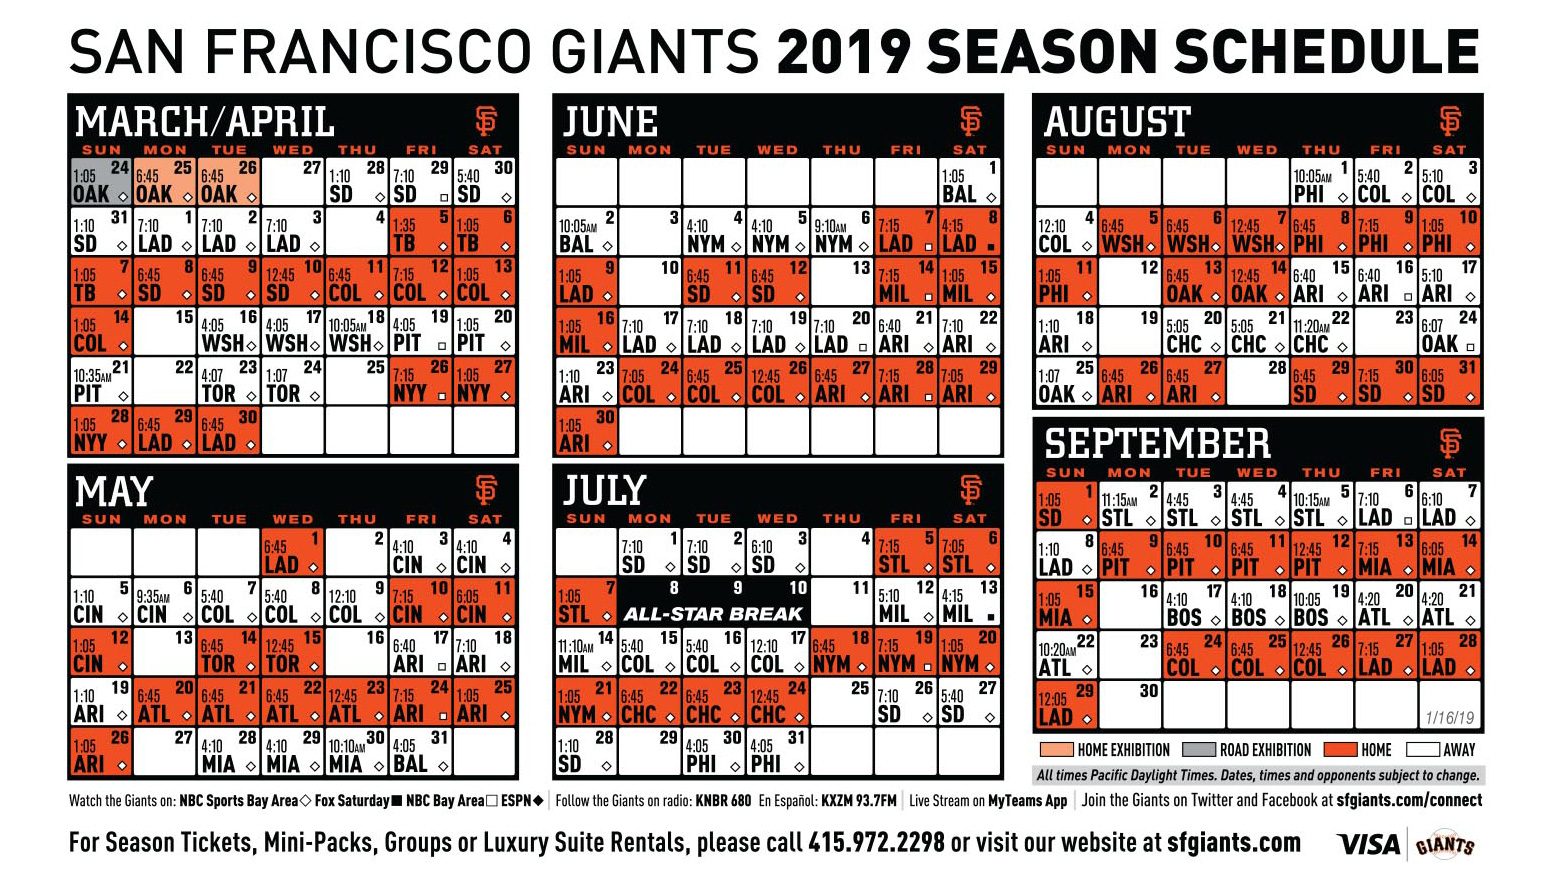 photograph relating to Brewers Printable Schedule named Giants 2019 Printable Routine San Francisco Giants